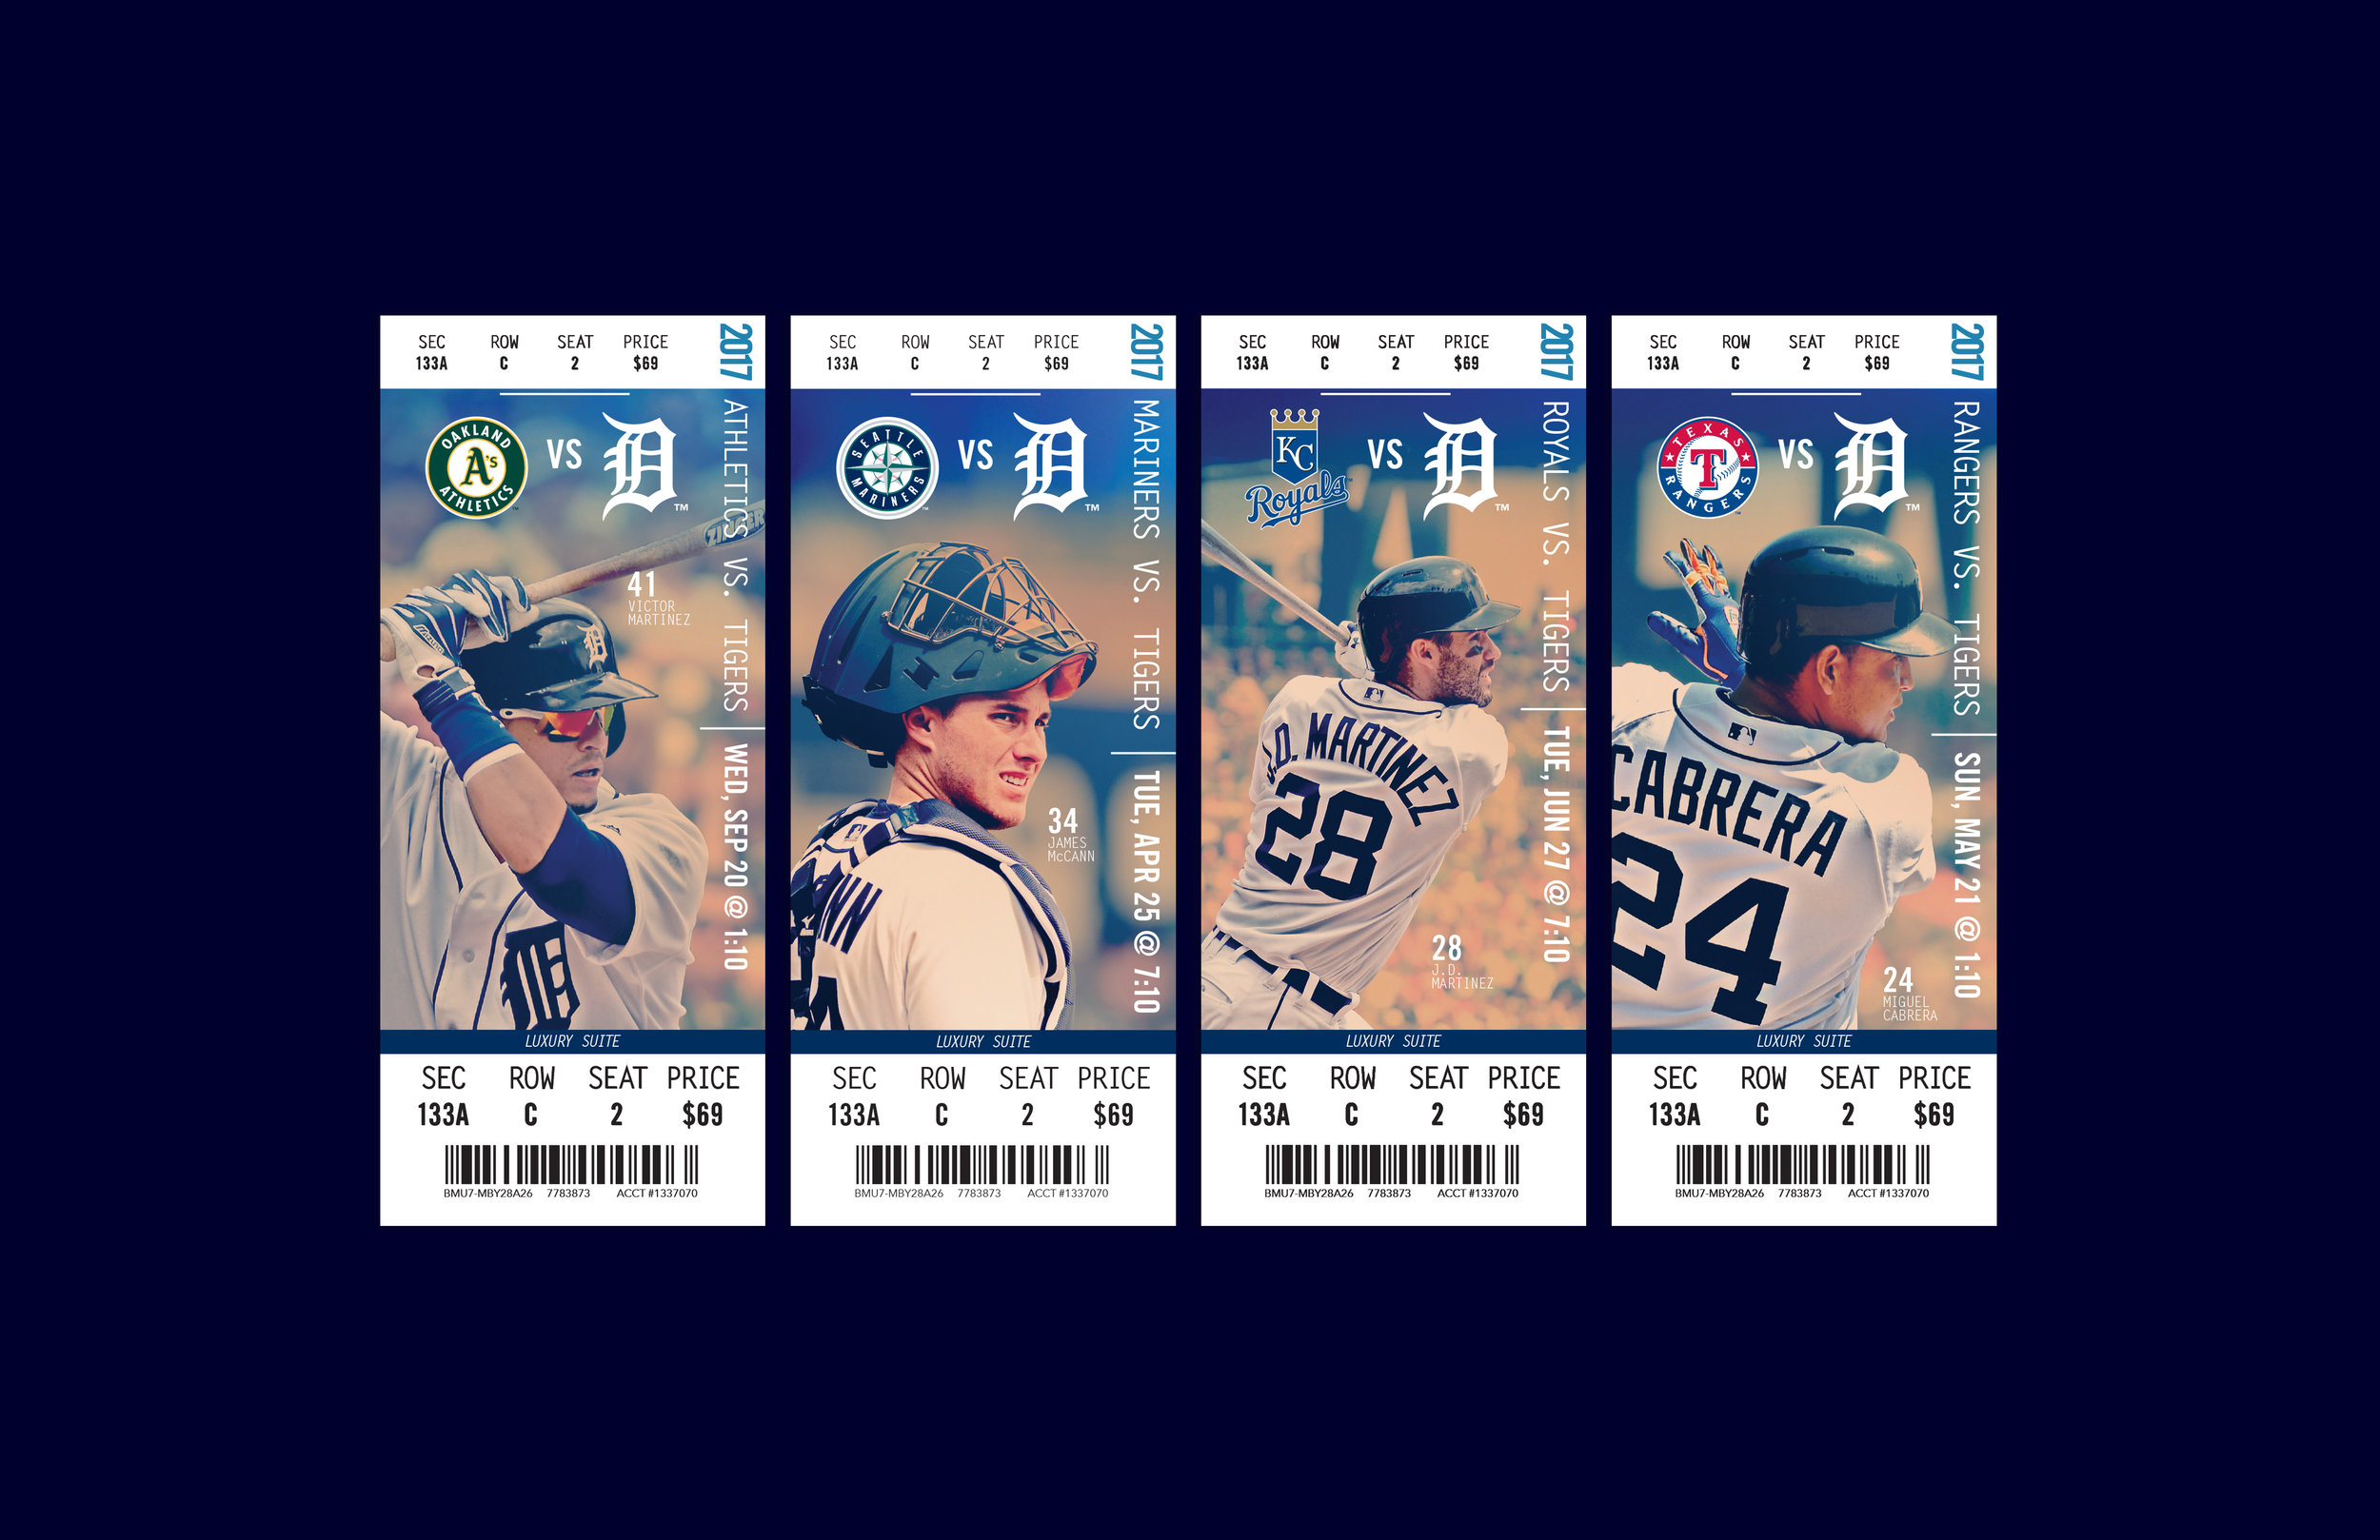 2017 Vanity Ticket Designs